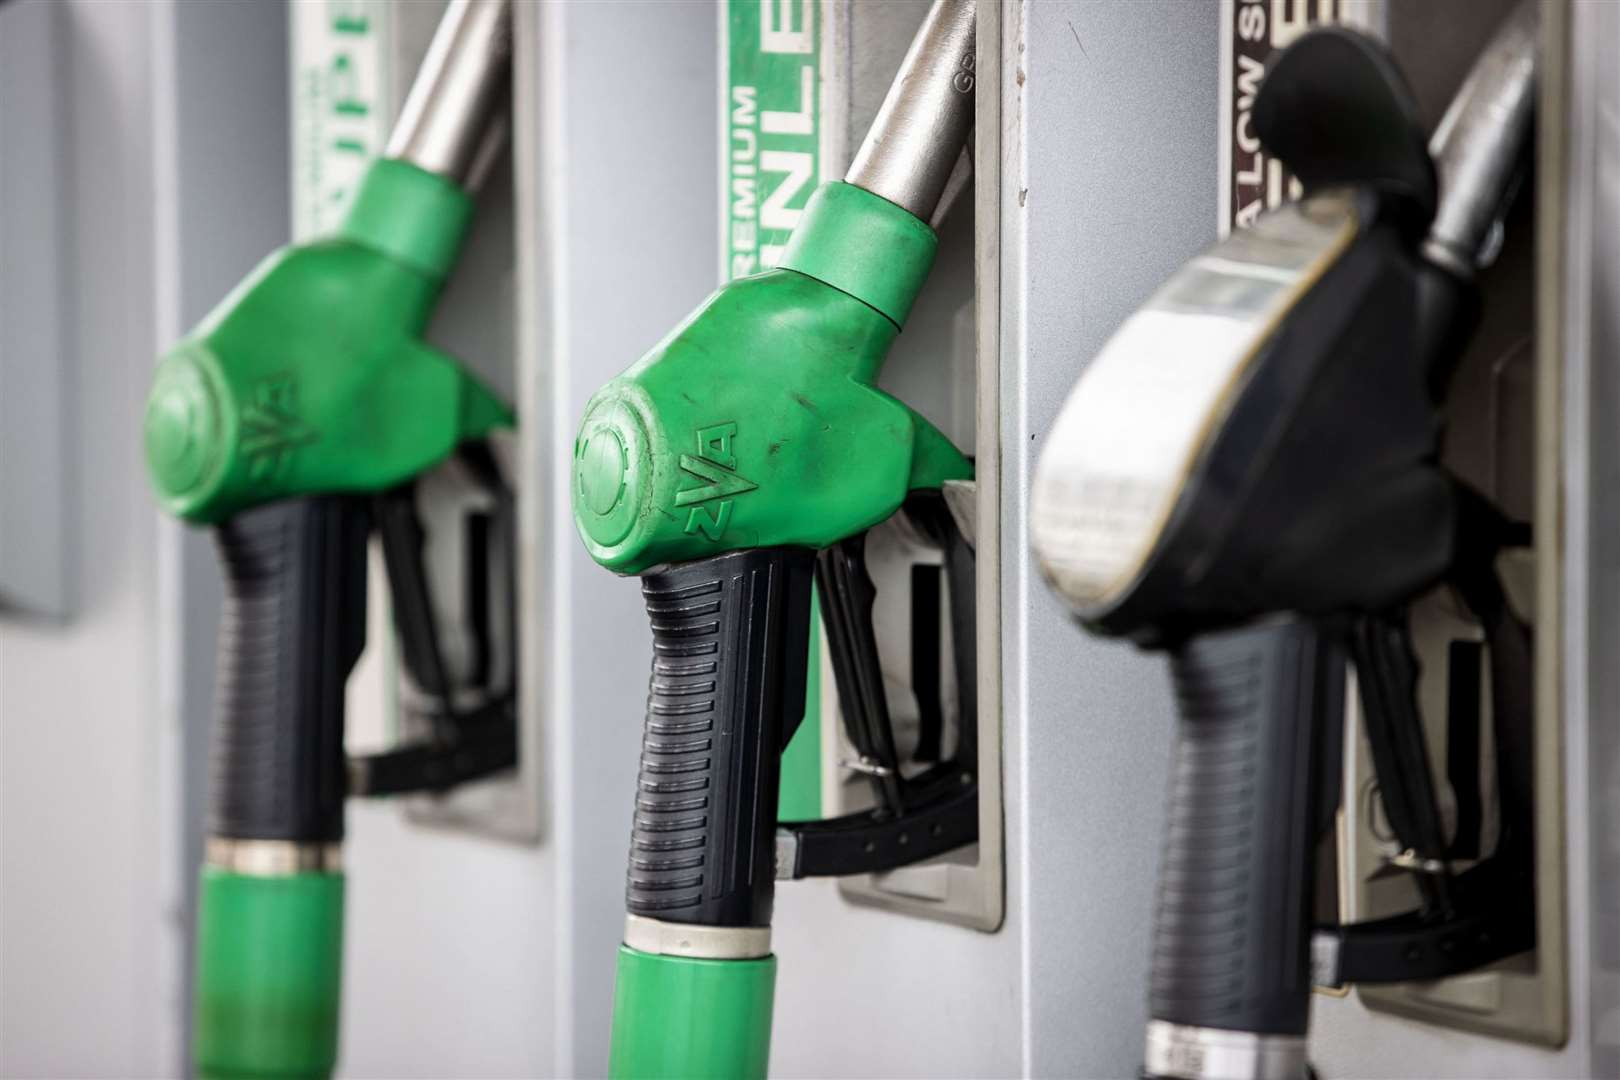 The cost of petrol has risen for the ninth month in a row and shows no signs of slowing